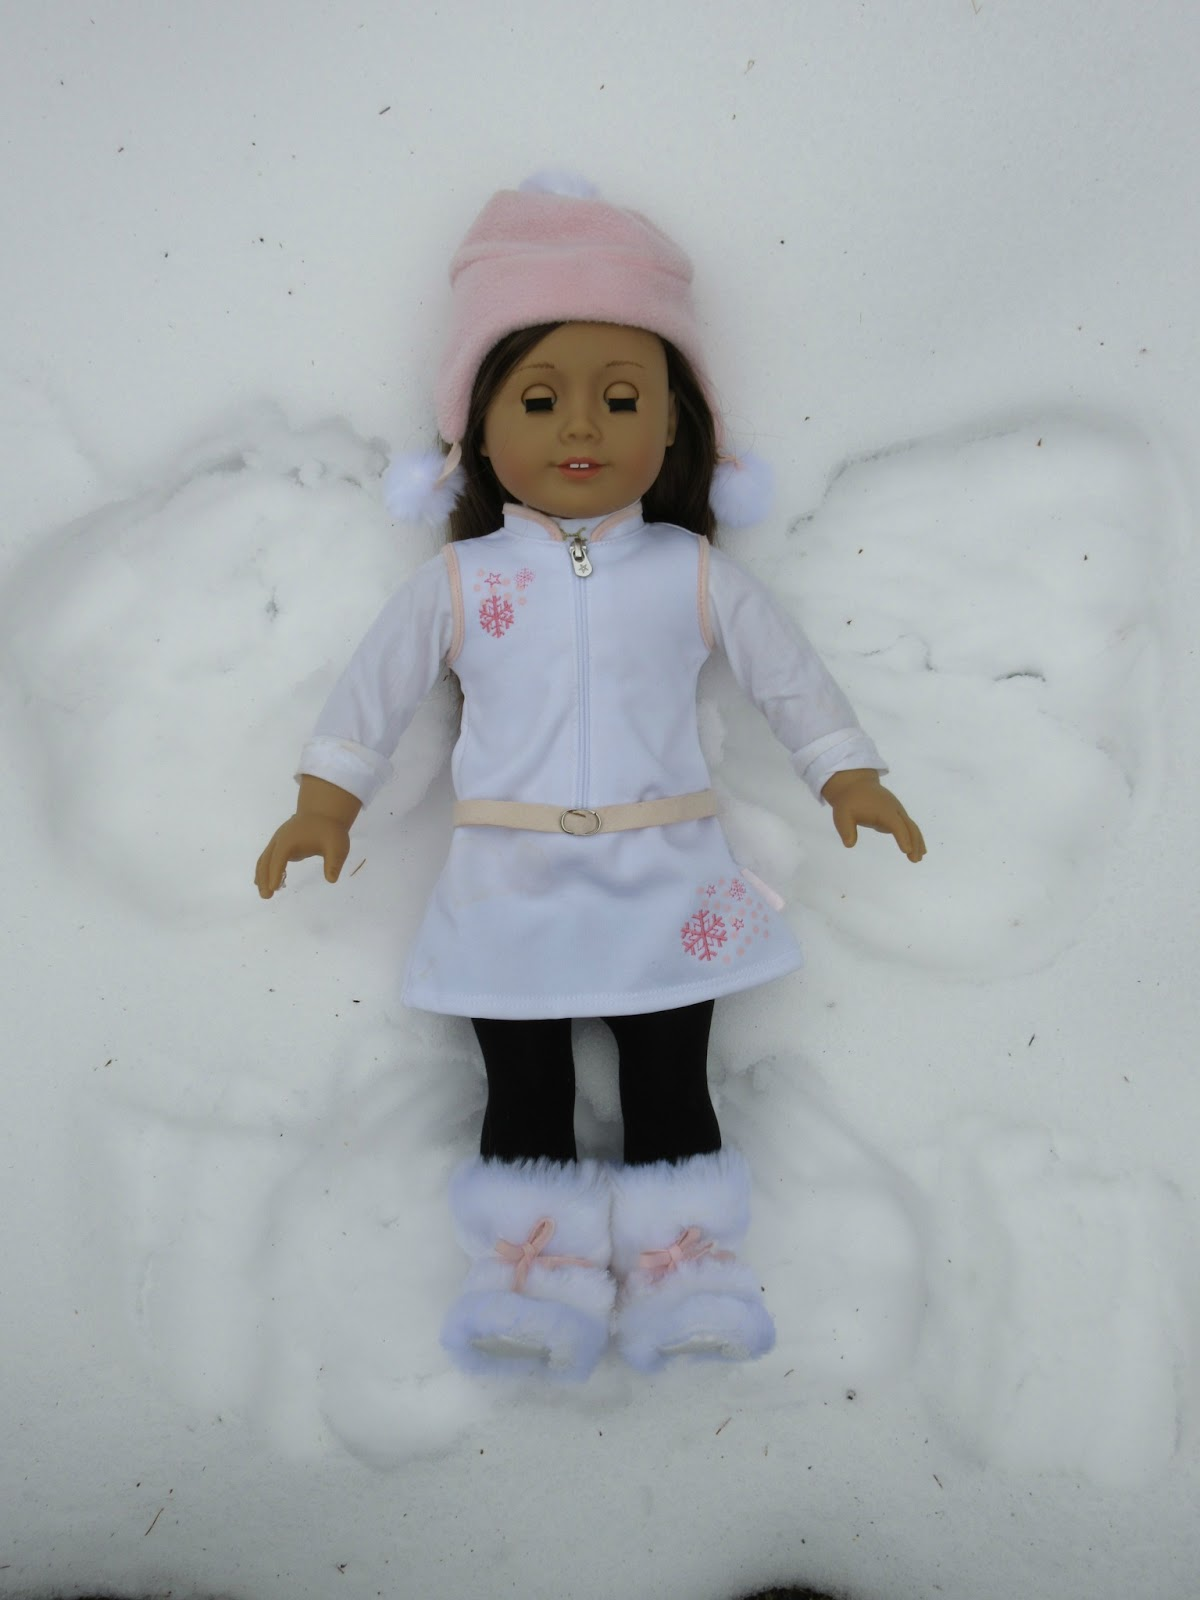 American girl snow angels.jpg